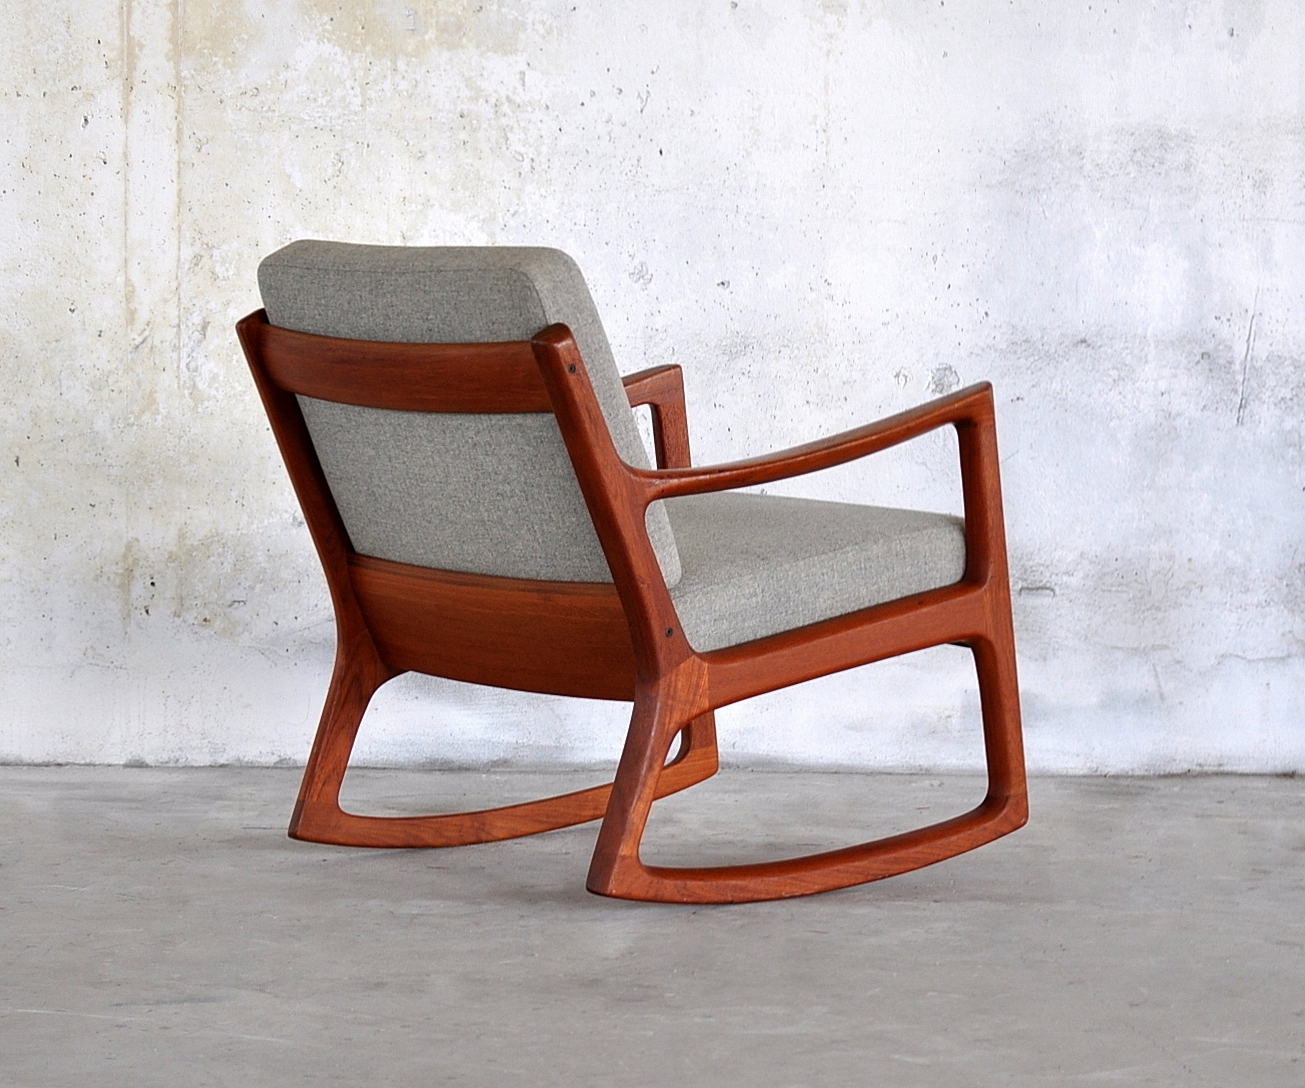 Contemporary Rocking Chair Uk — All Contemporary Design : Unique For Current Modern Patio Rocking Chairs (View 8 of 15)